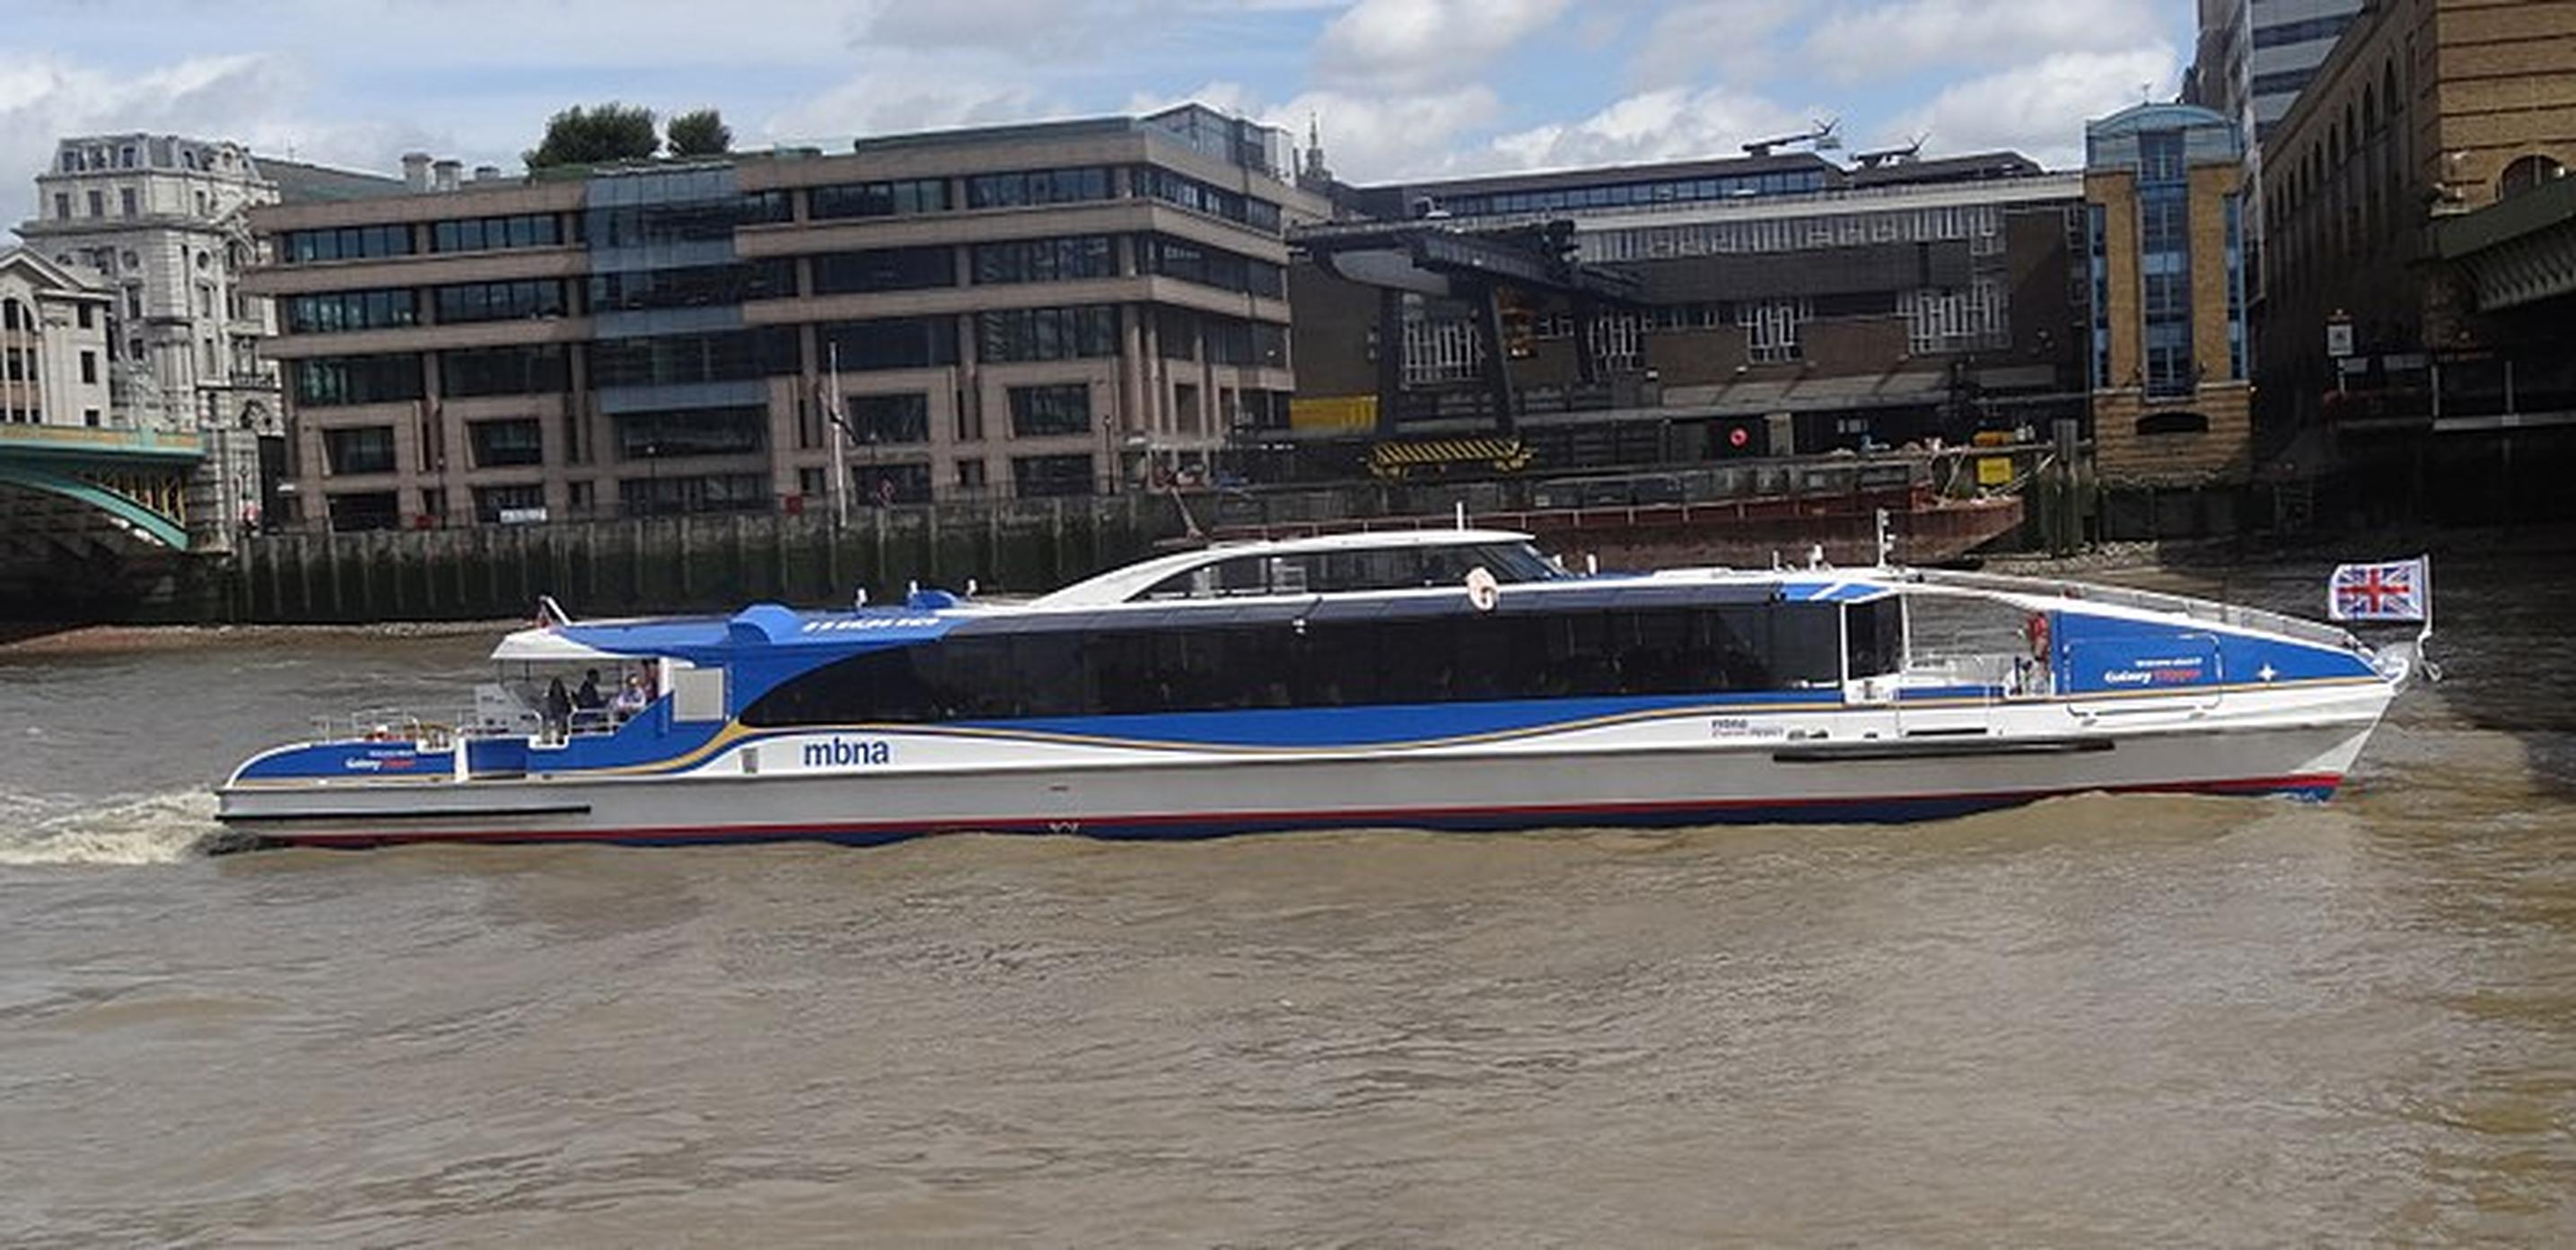 TfL selects operator for foot & bike ferry